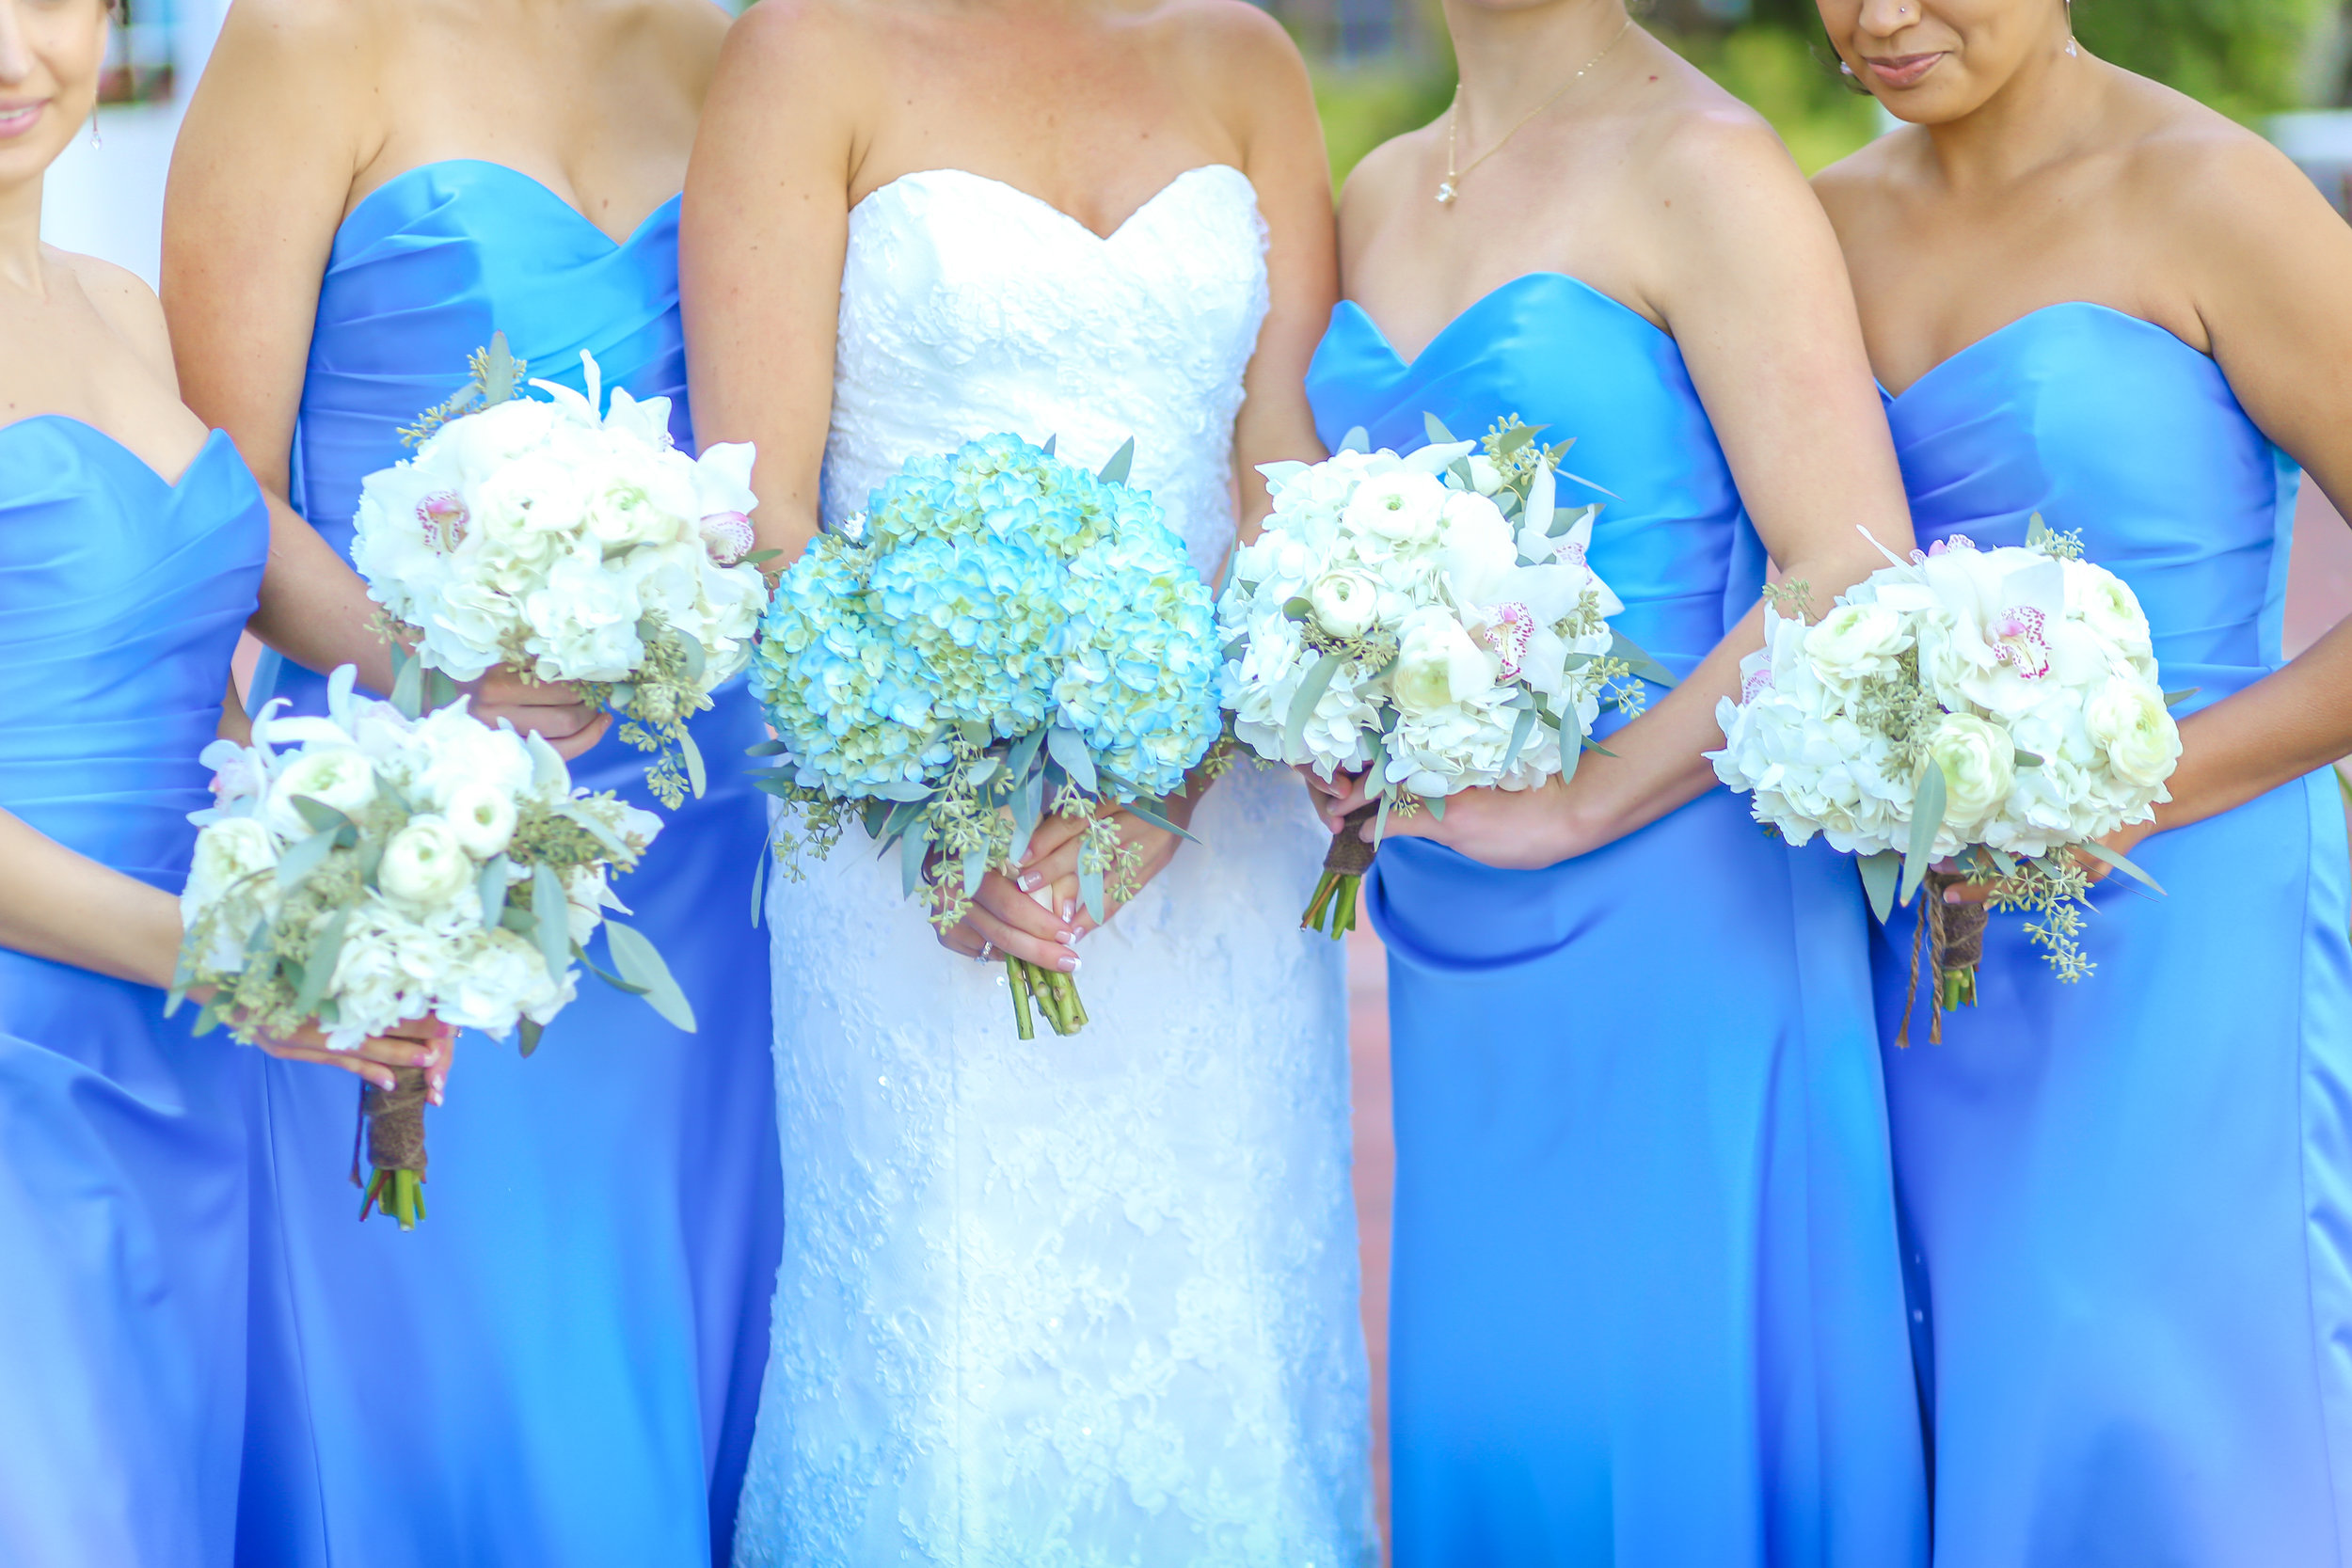 Bridesmaids popped next to the bride in their strapless azure gowns.